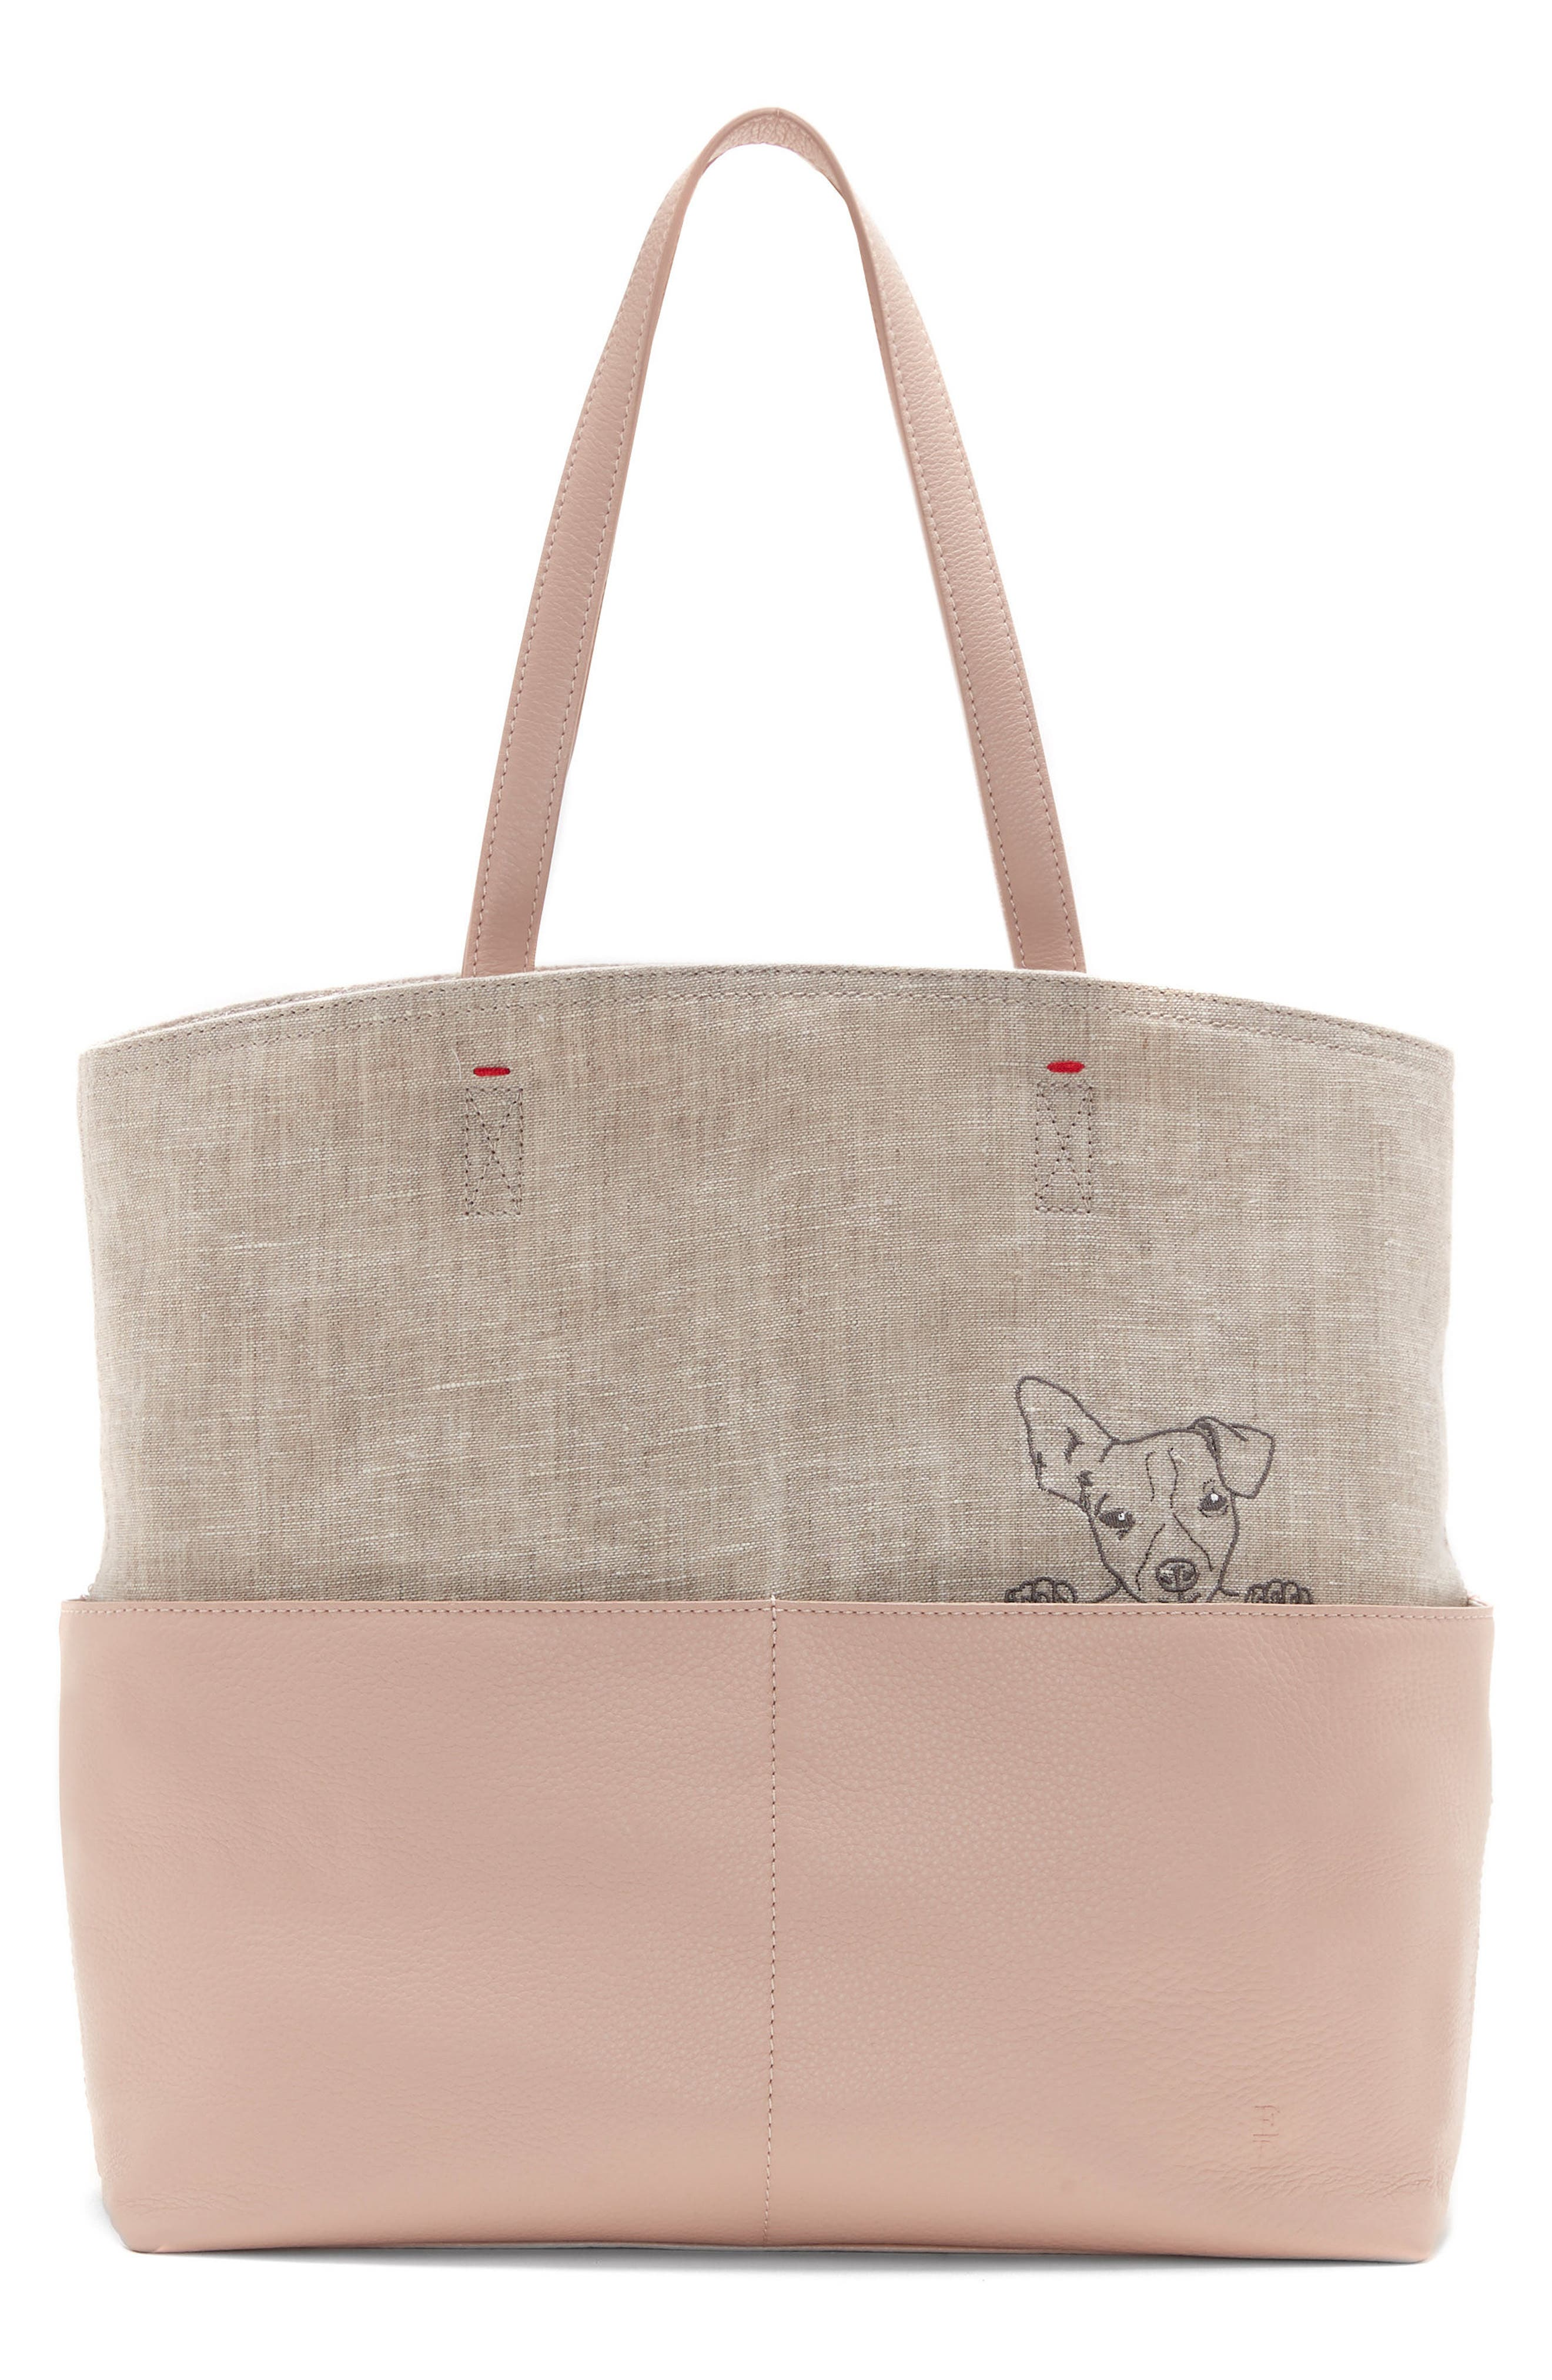 Henlee Canvas & Leather Tote,                             Main thumbnail 1, color,                             650